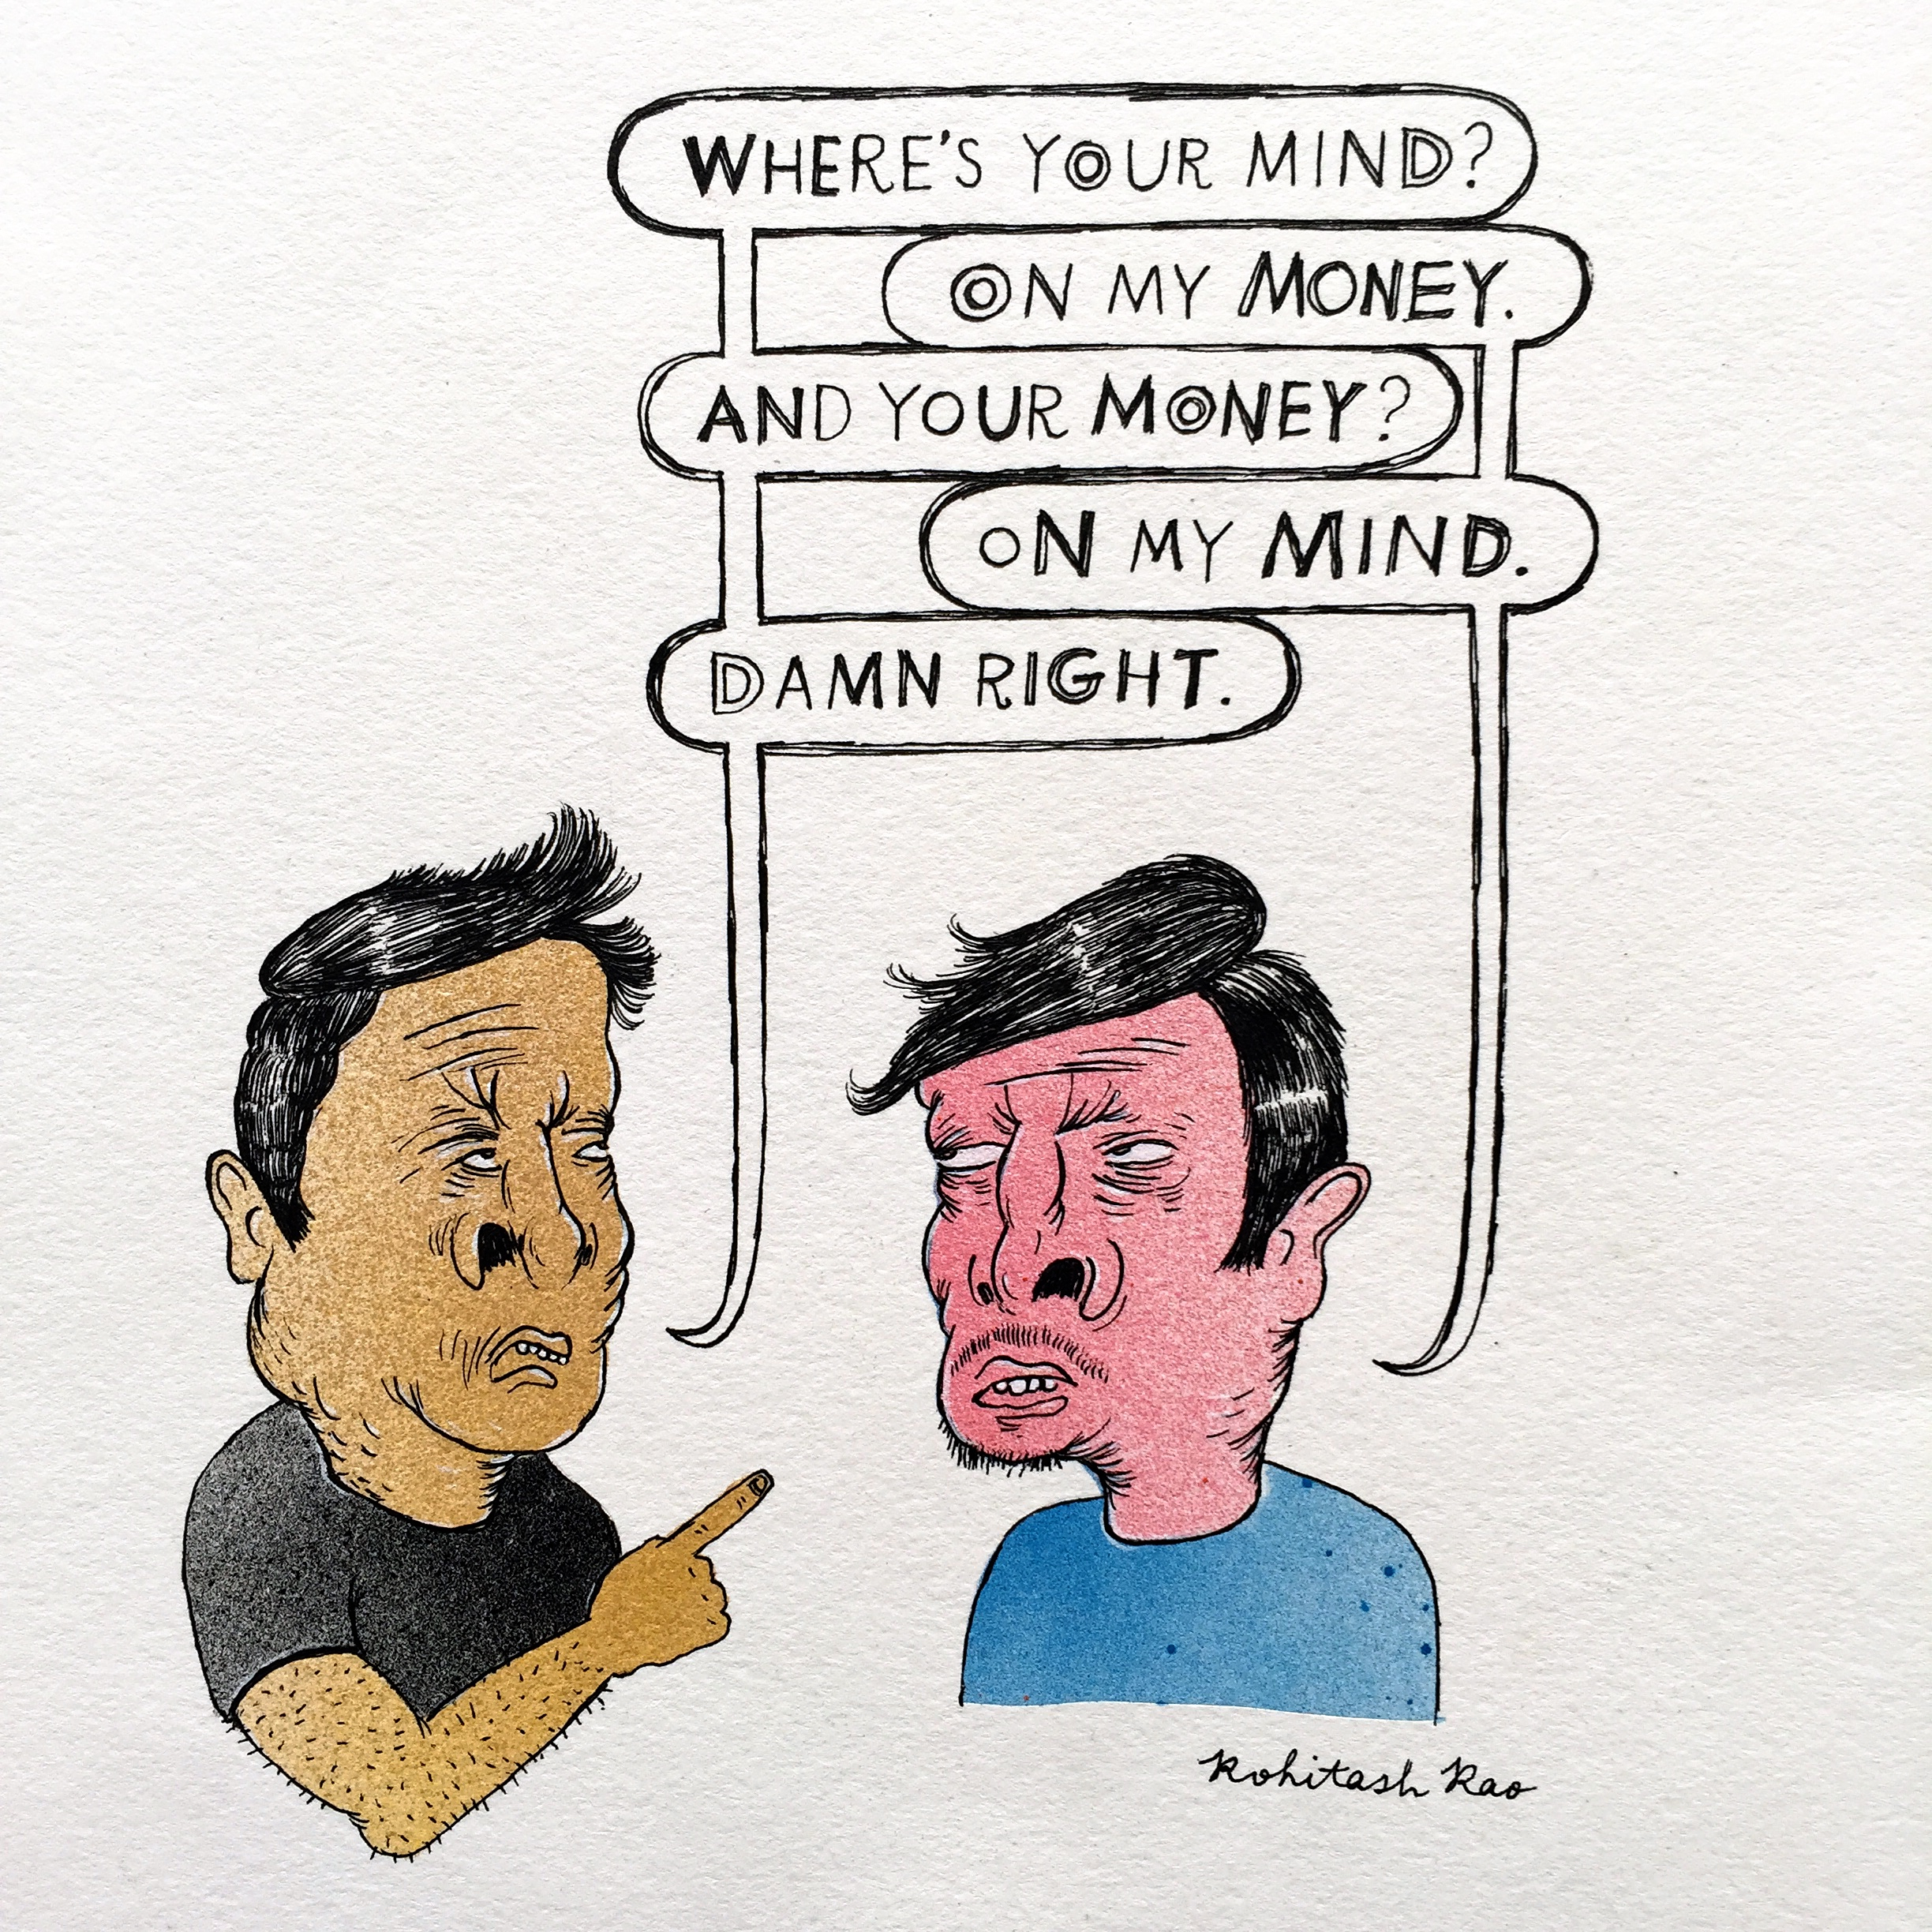 MIND ON MY MONEY